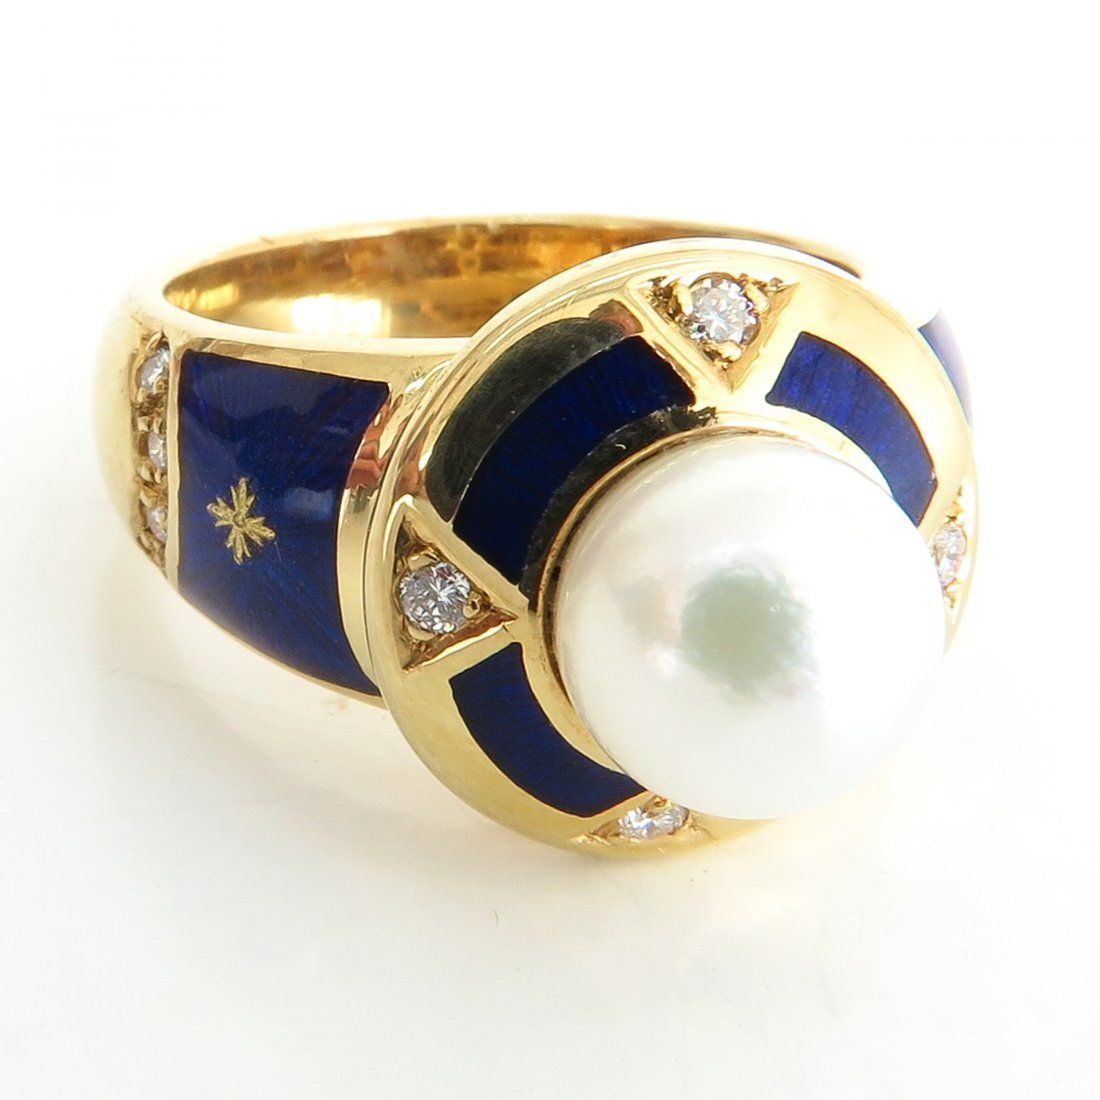 Faberge 18KG Pearl and Diamond Ring By Victor Mayer